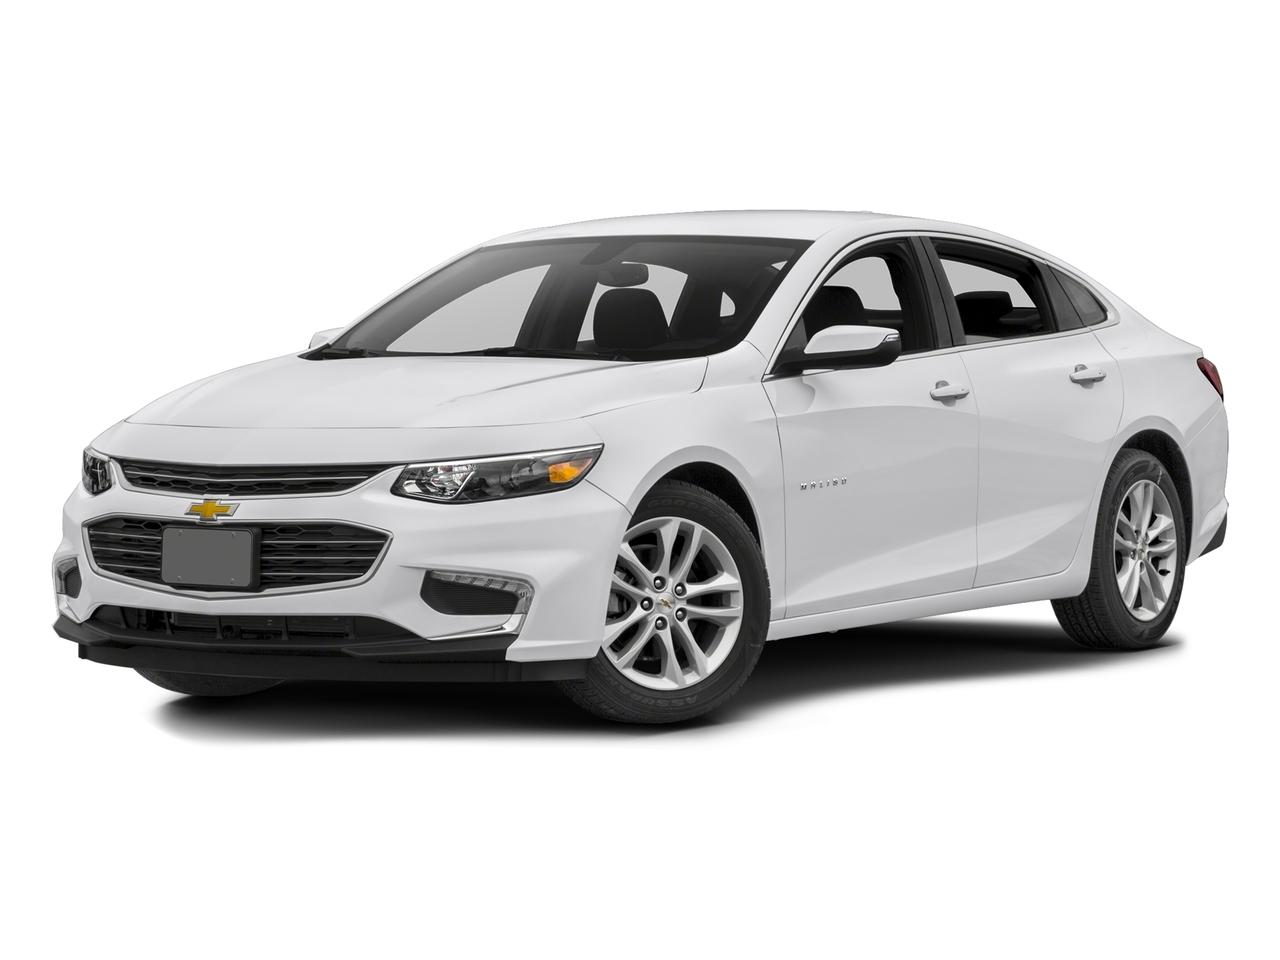 2016 Chevrolet Malibu Vehicle Photo in Durham, NC 27713